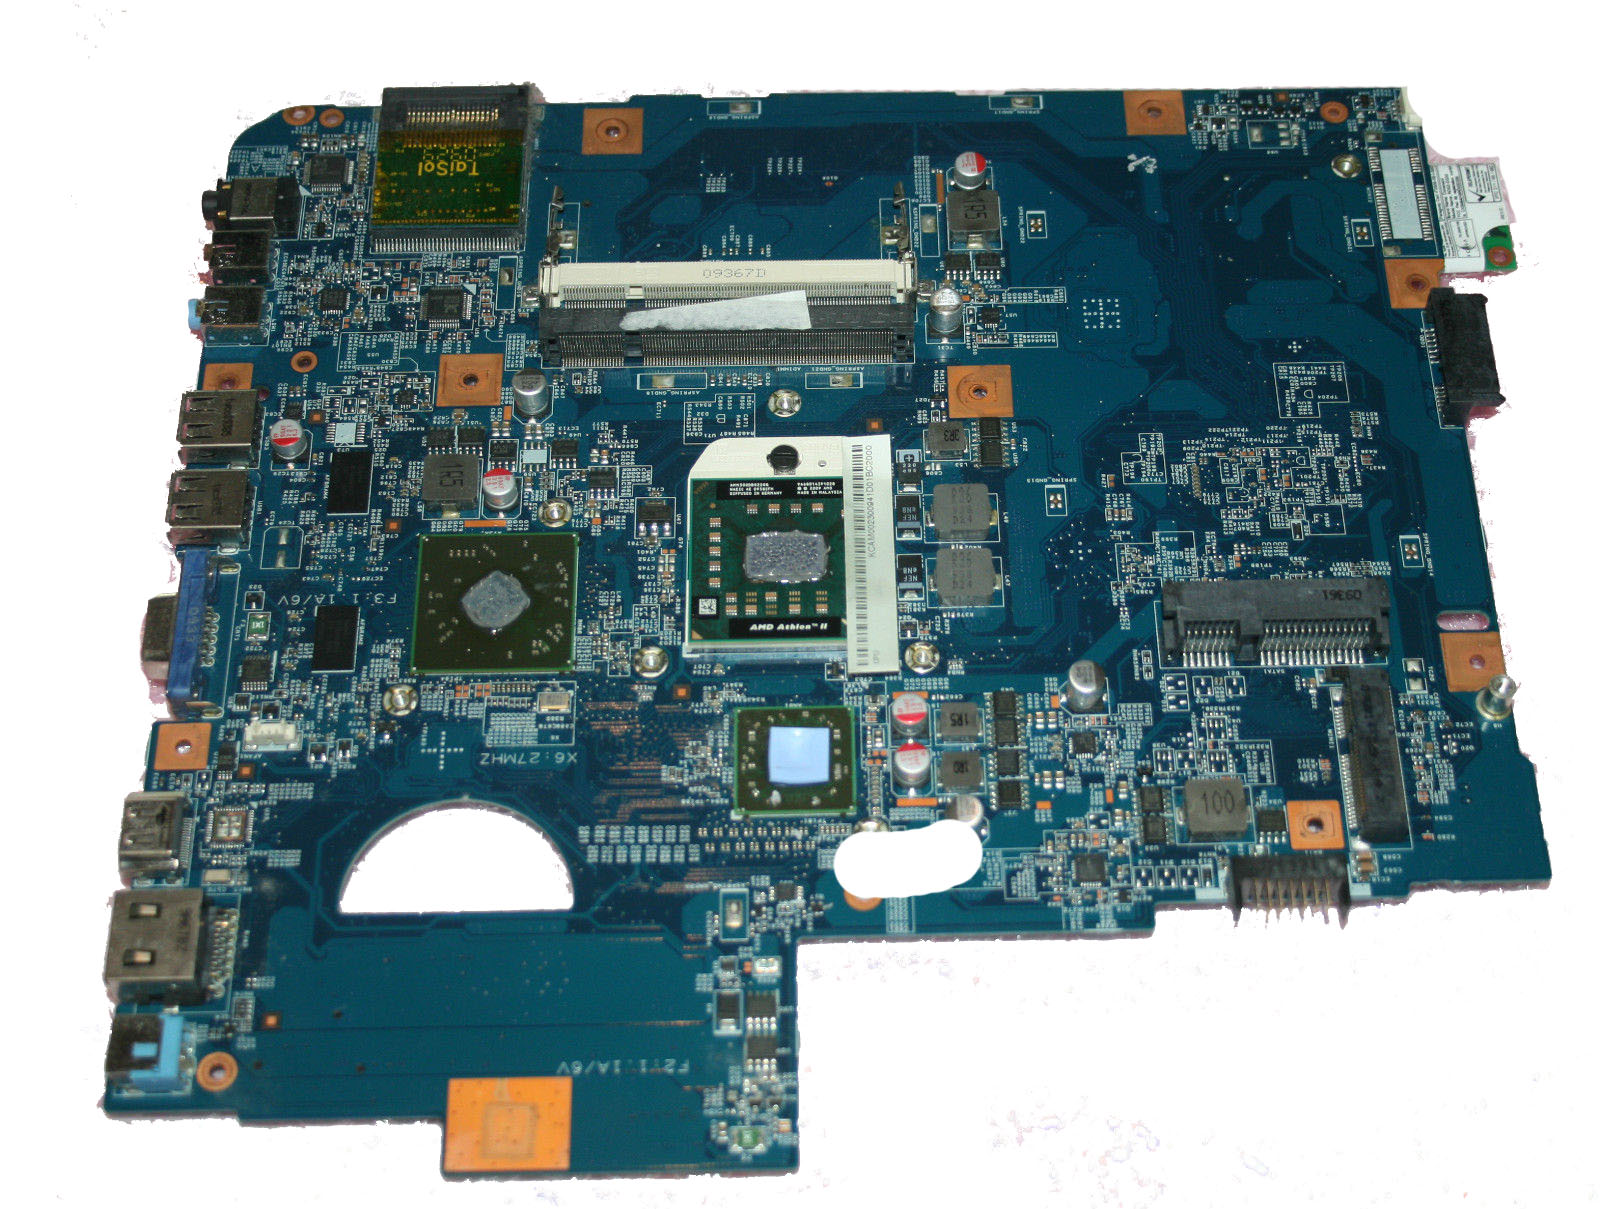 Laptop <font><b>Motherboard</b></font> For <font><b>Acer</b></font> asipre 5542 <font><b>5542G</b></font> 09230-1 NBJV50-TR MB 48.4FN01.011 MBPHP01001 MB.PHP01.001 HD4500 DDR2 image